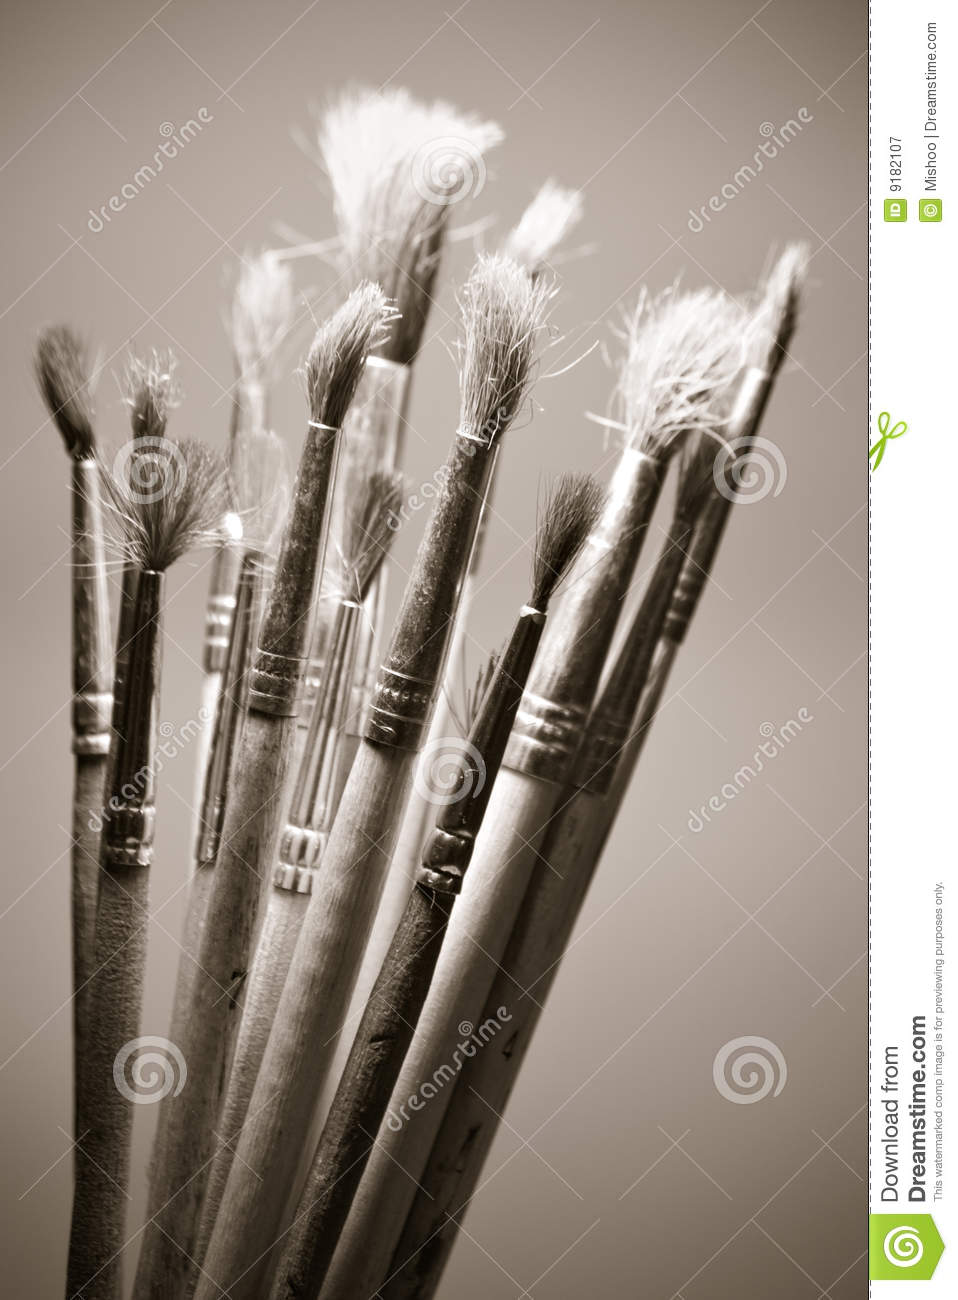 paint brushes photography black and white. royaltyfree stock photo download old paintbrushes paint brushes photography black and white b